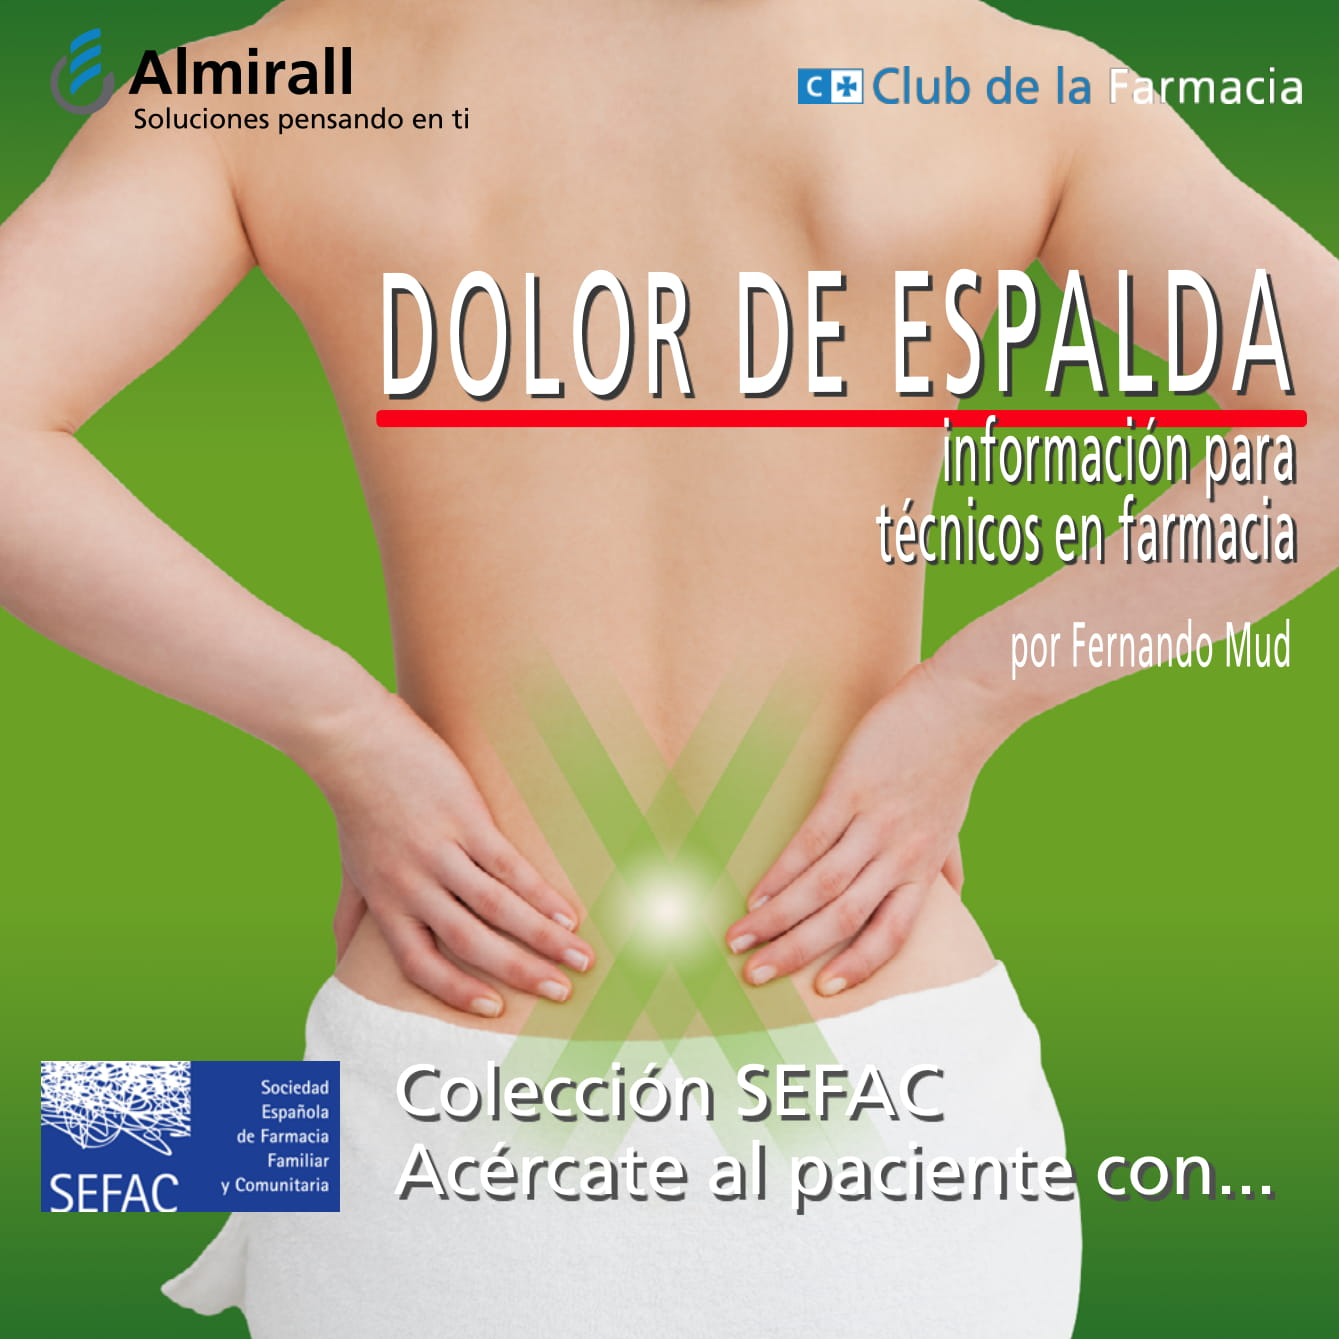 Ebooks-Club de la Farmacia-4.jpg